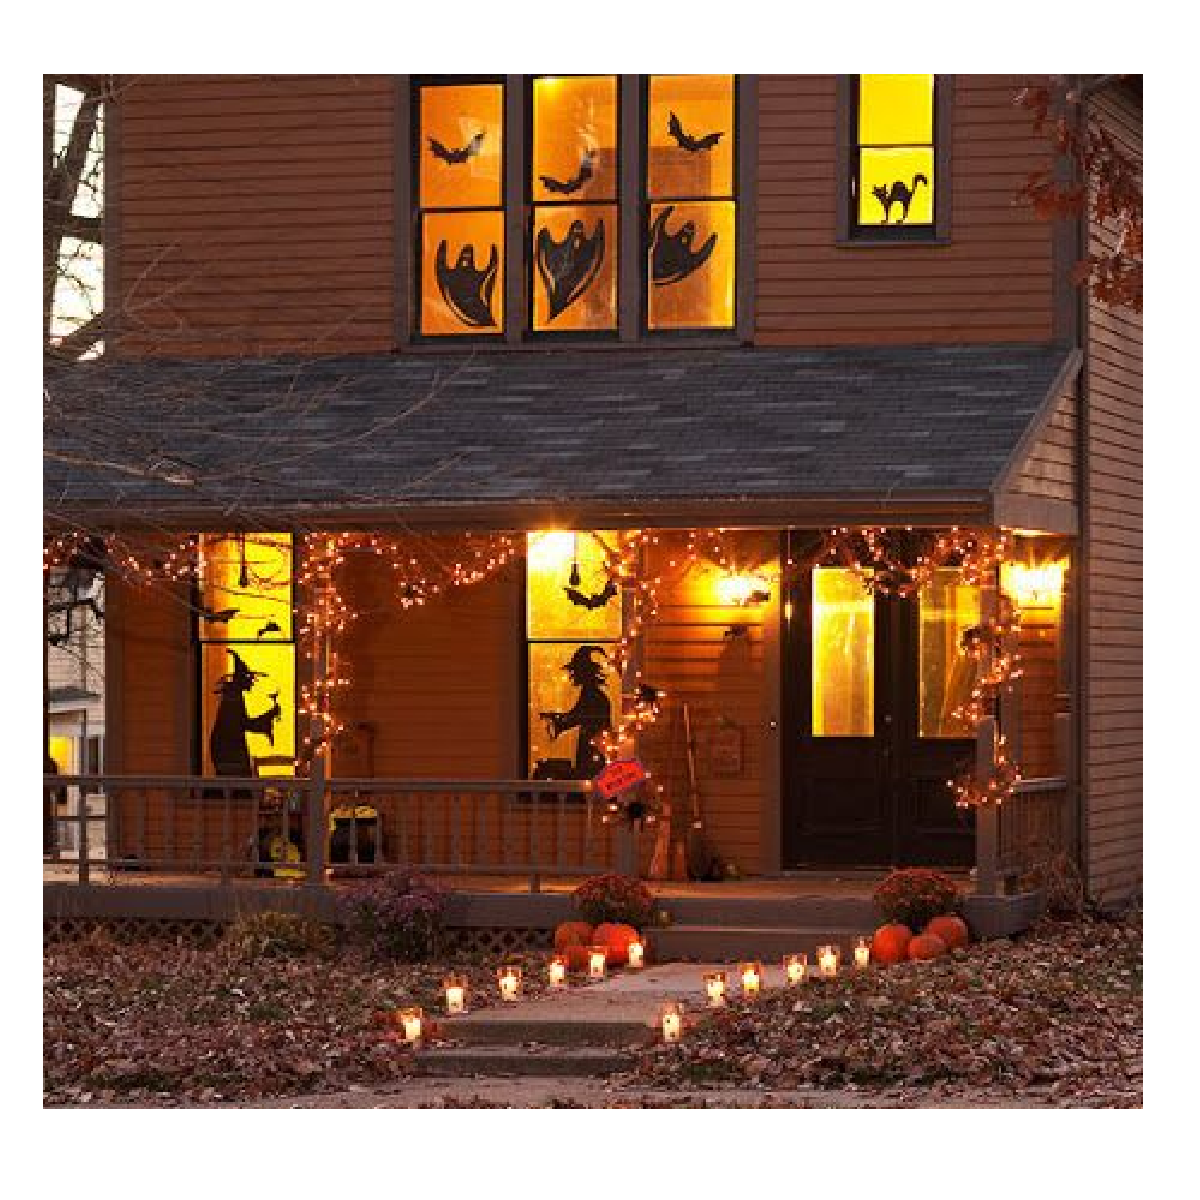 D co maison pour halloween - Maison decoree pour halloween ...